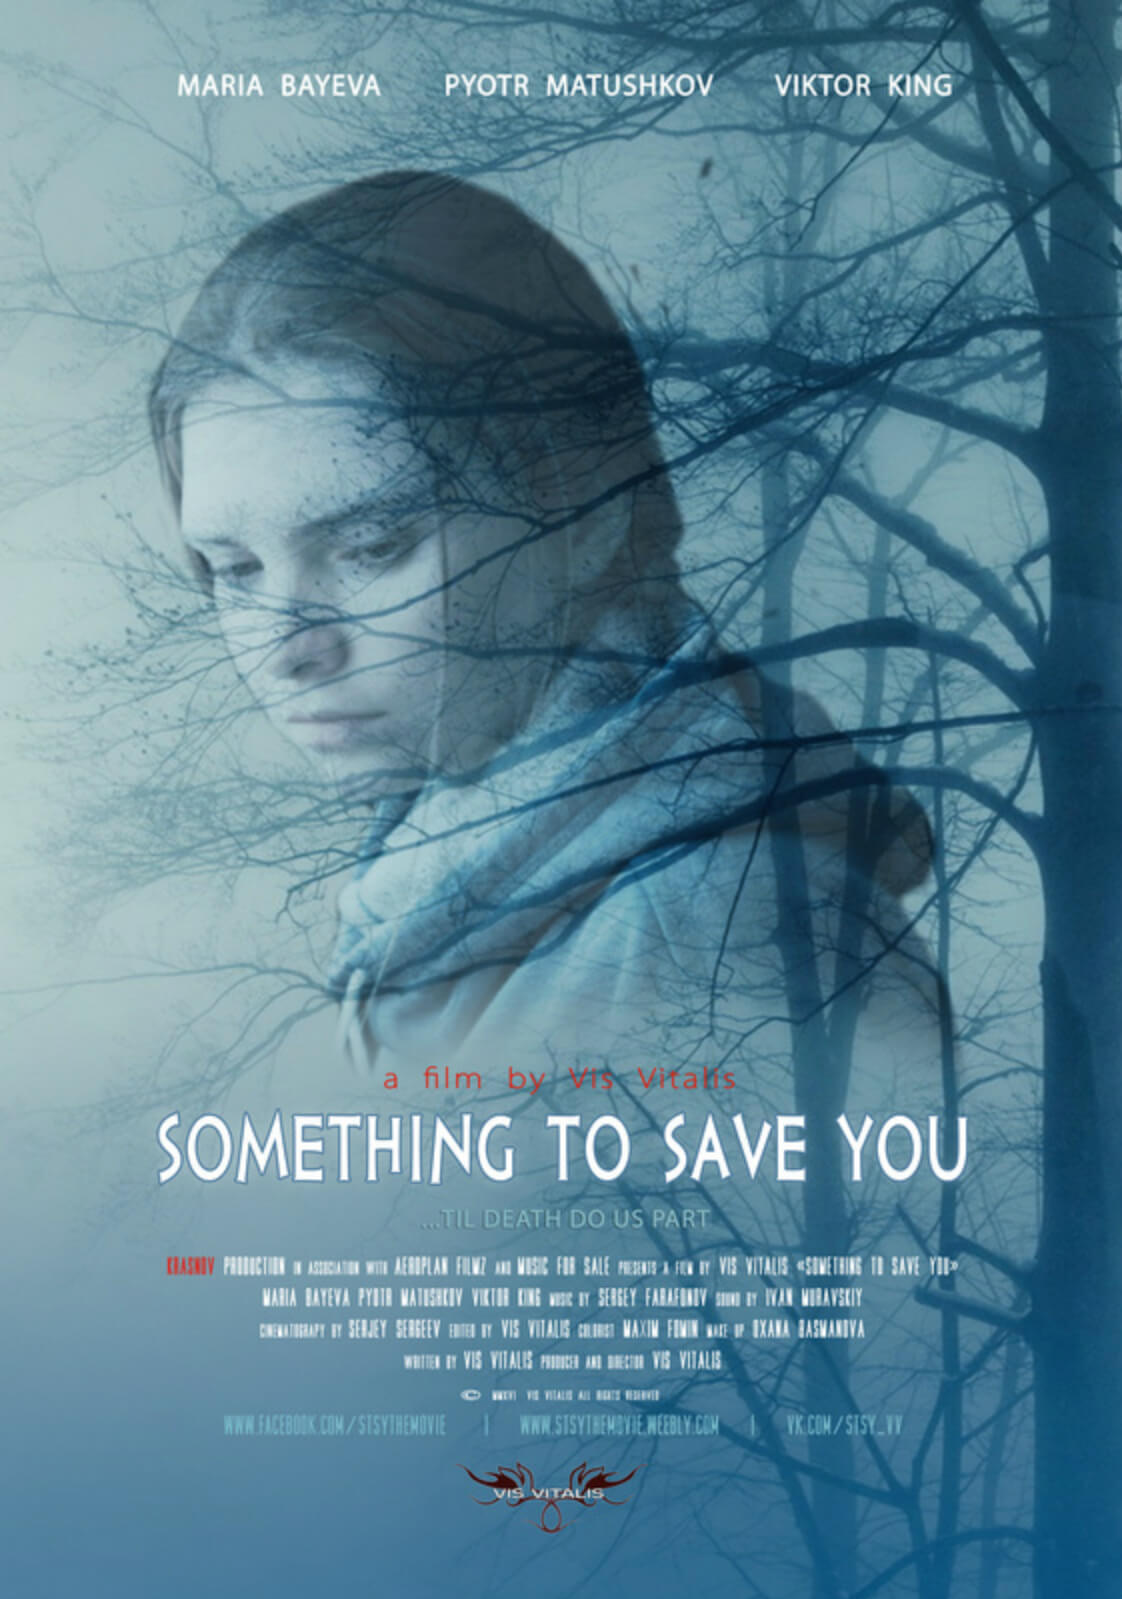 Something To Save Youposter3.jpg 1 - Exclusive Interview with Vis Vitalis - Director of Something to Save You